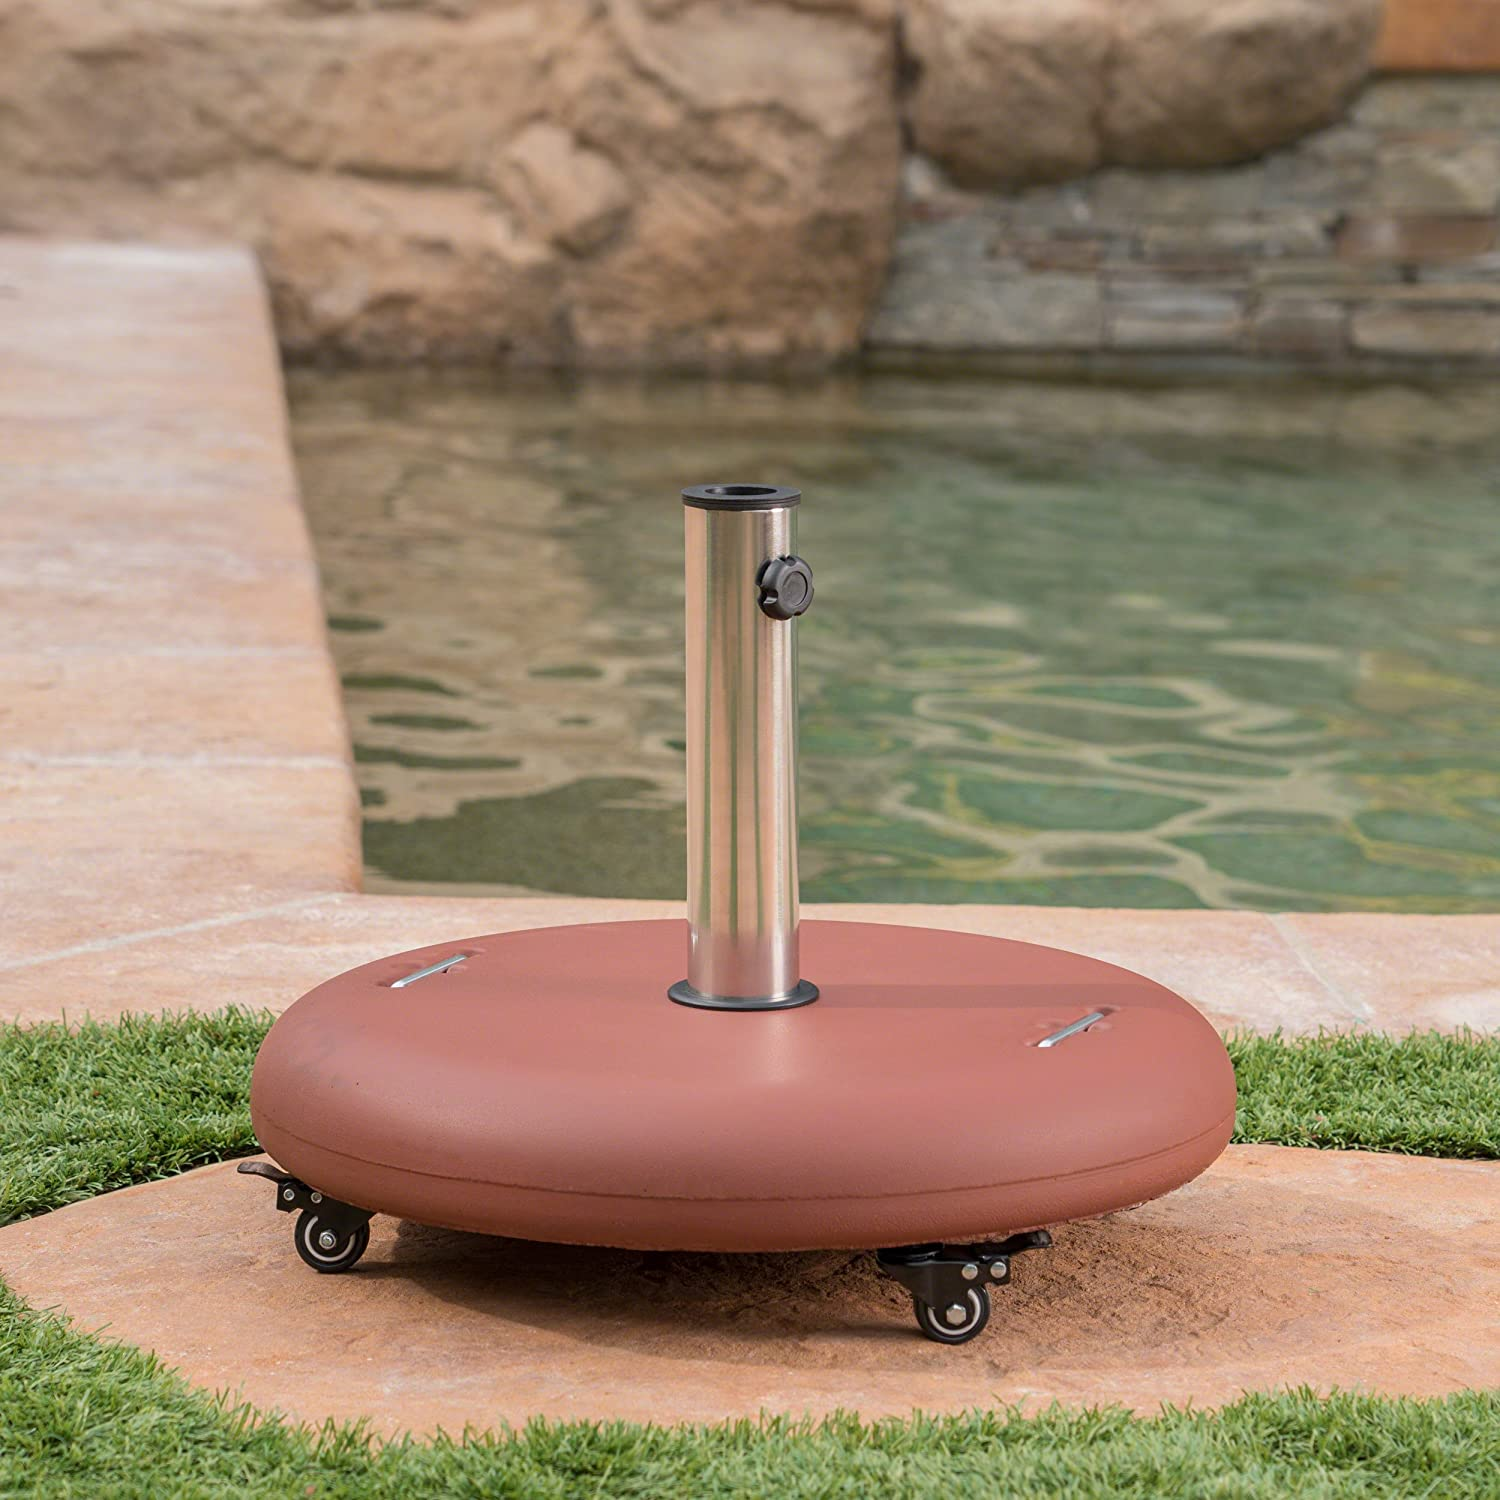 Christopher Knight Home Louise Outdoor Red Concrete Circular 80lb Base with Steel Umbrella Holder, 21.65 x 21.65 x 17.00